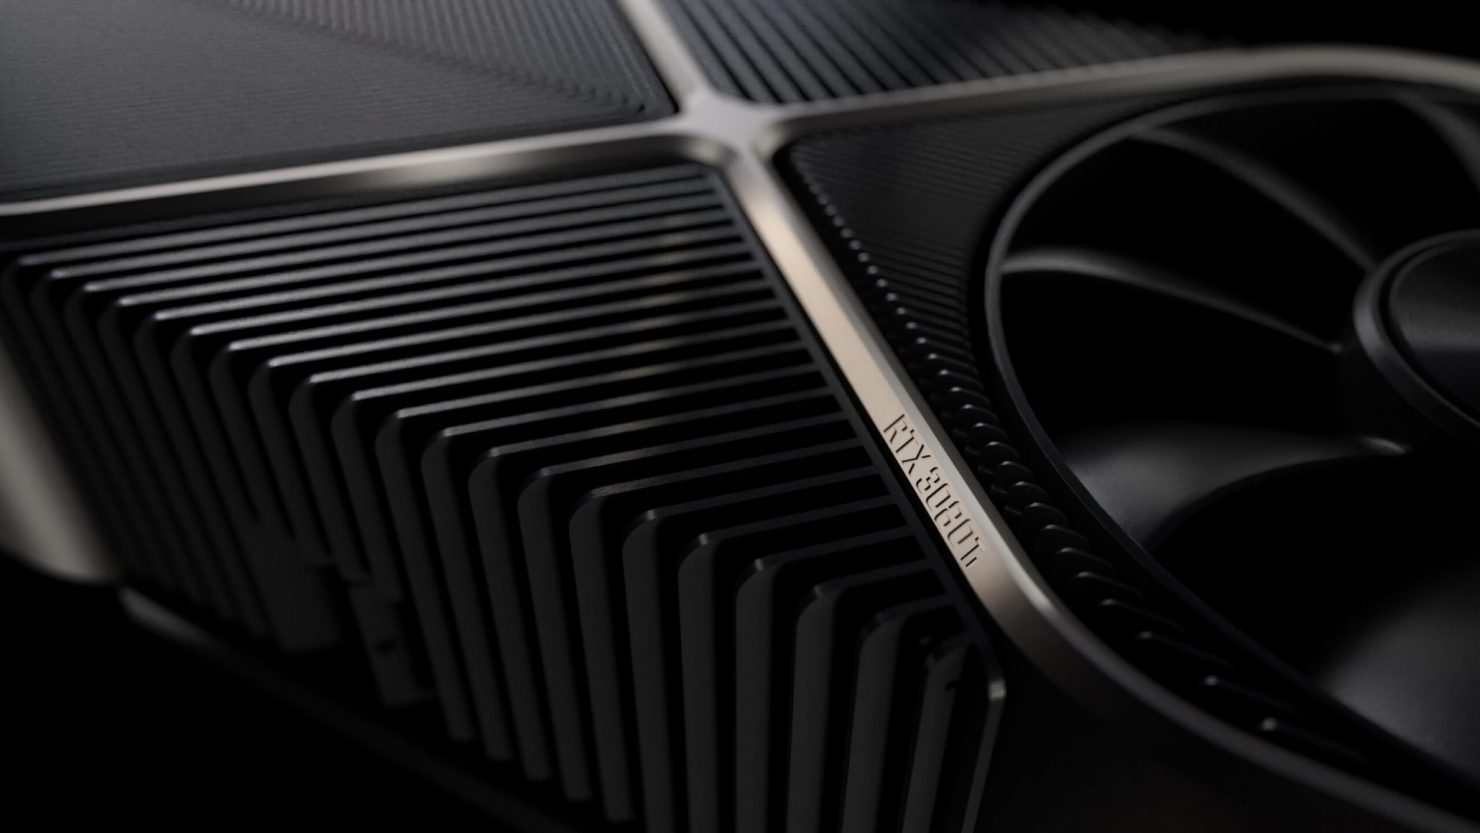 nvidia-geforce-rtx-3080-ti-specifications-confirmed-&-founder's-edition-model-pictured